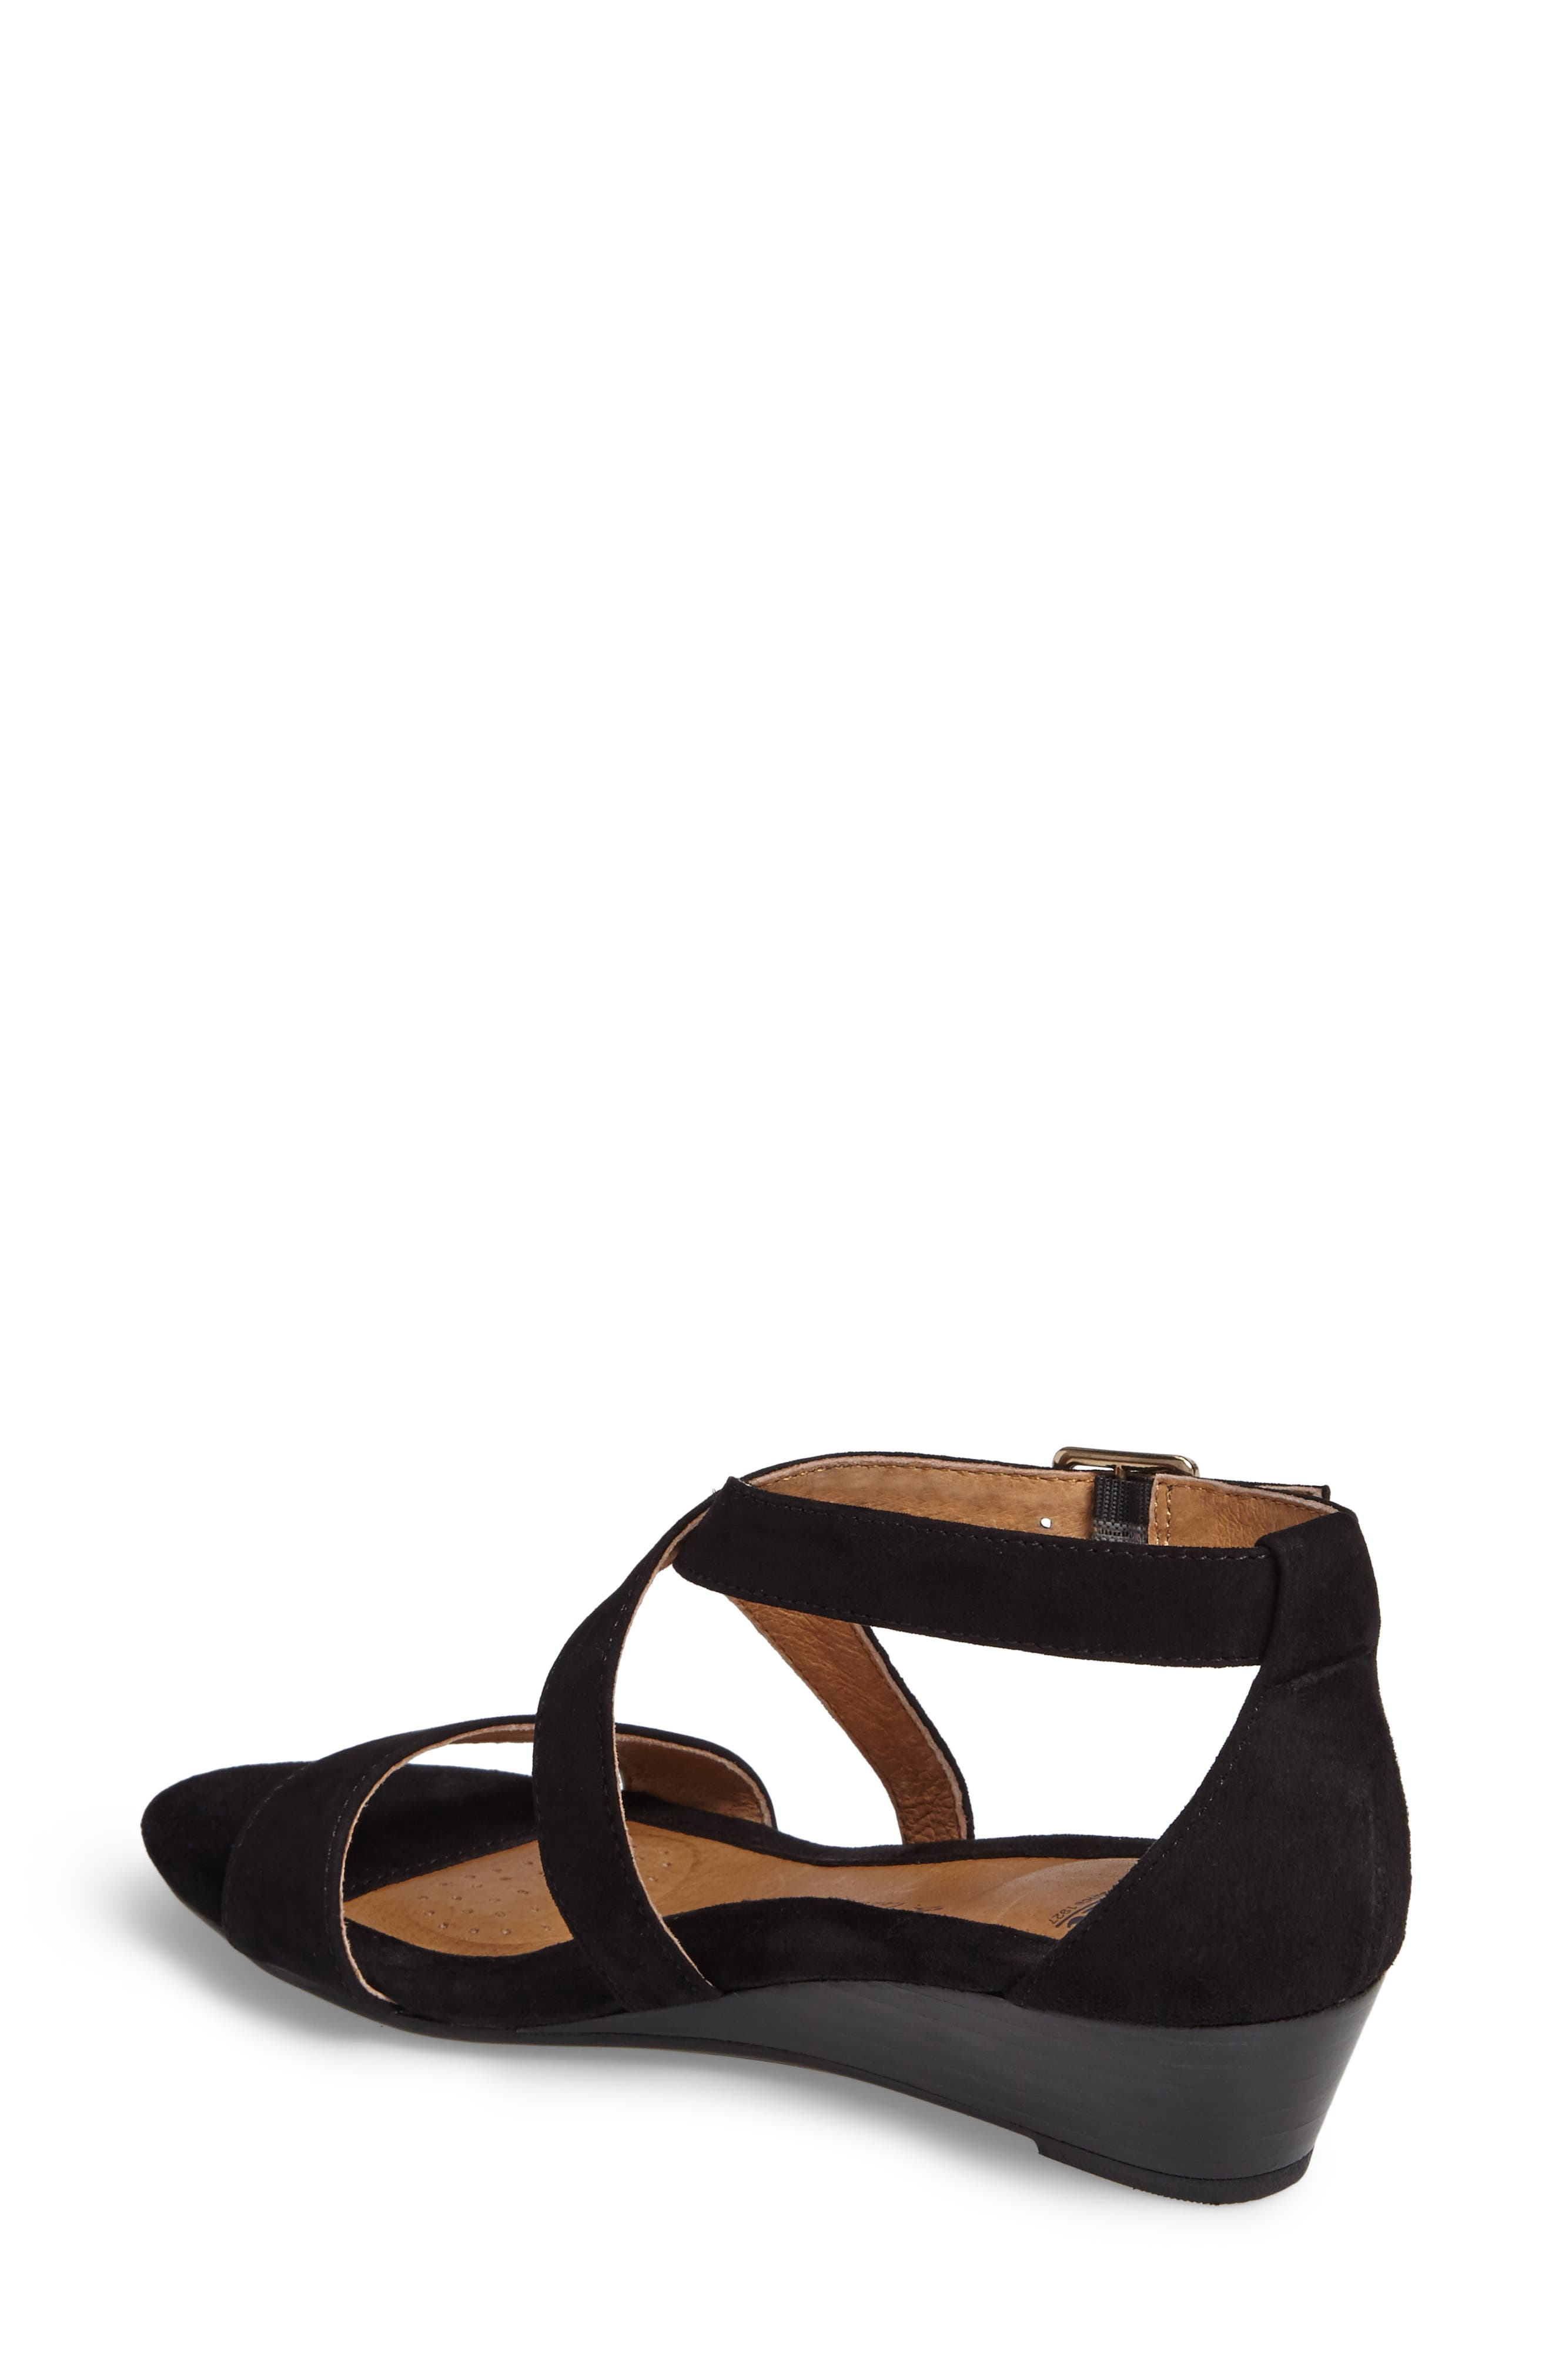 'Innis' Low Wedge Sandal,                             Alternate thumbnail 13, color,